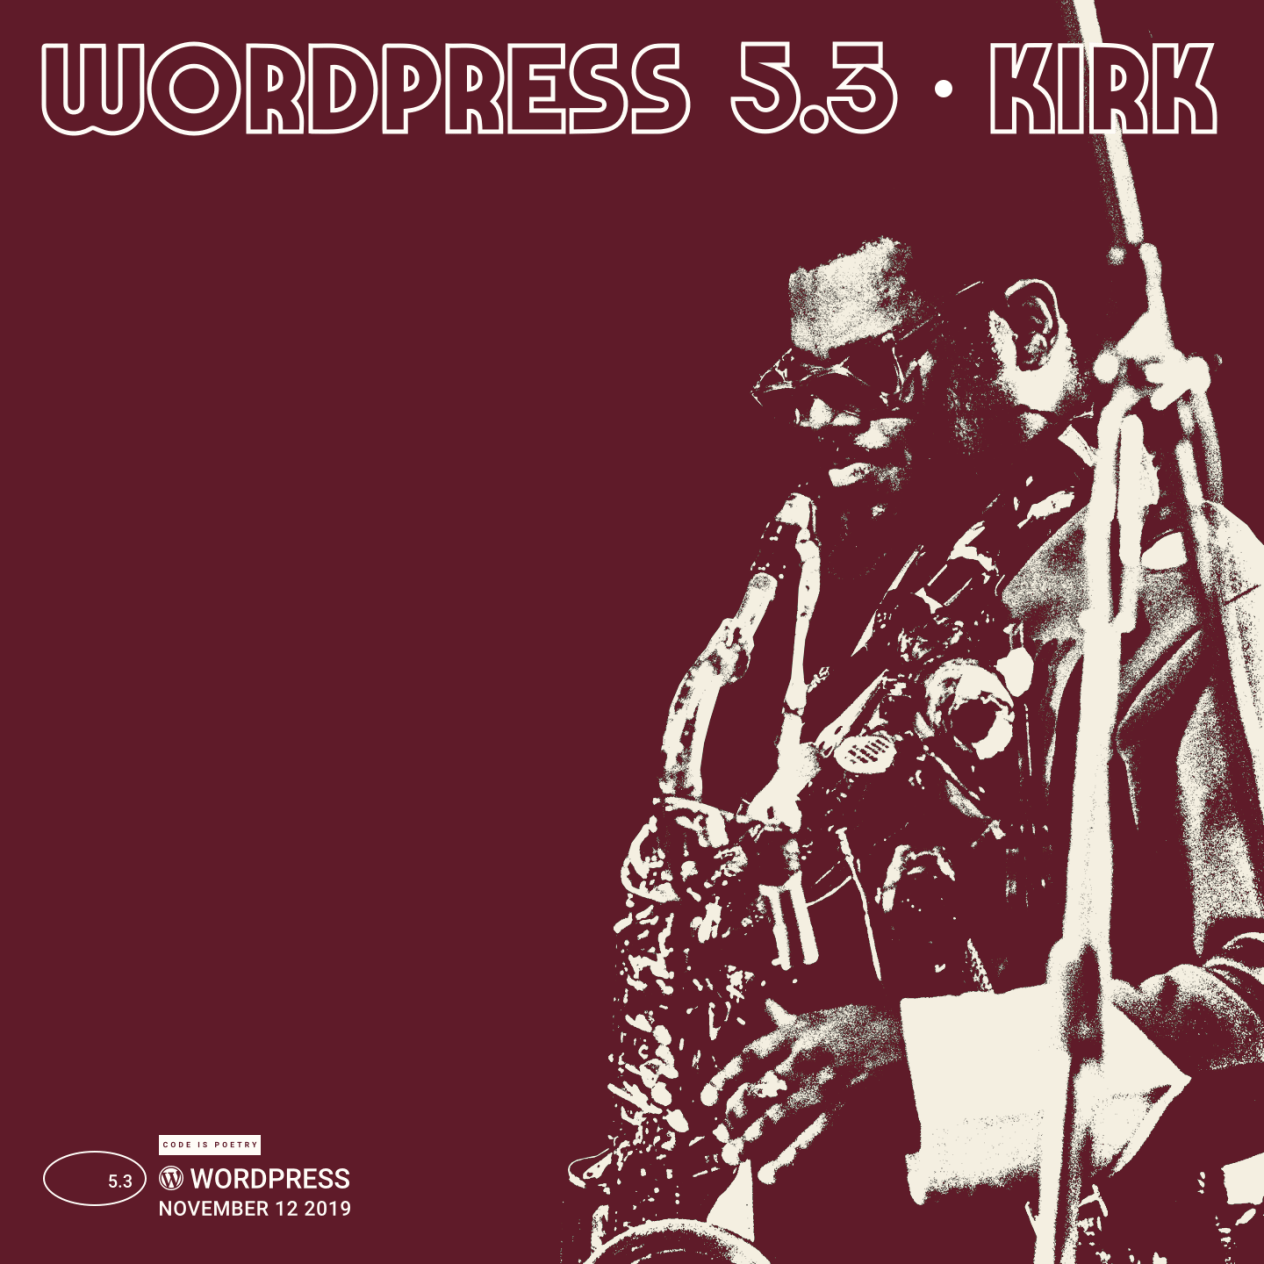 WordPress 5.3 cover